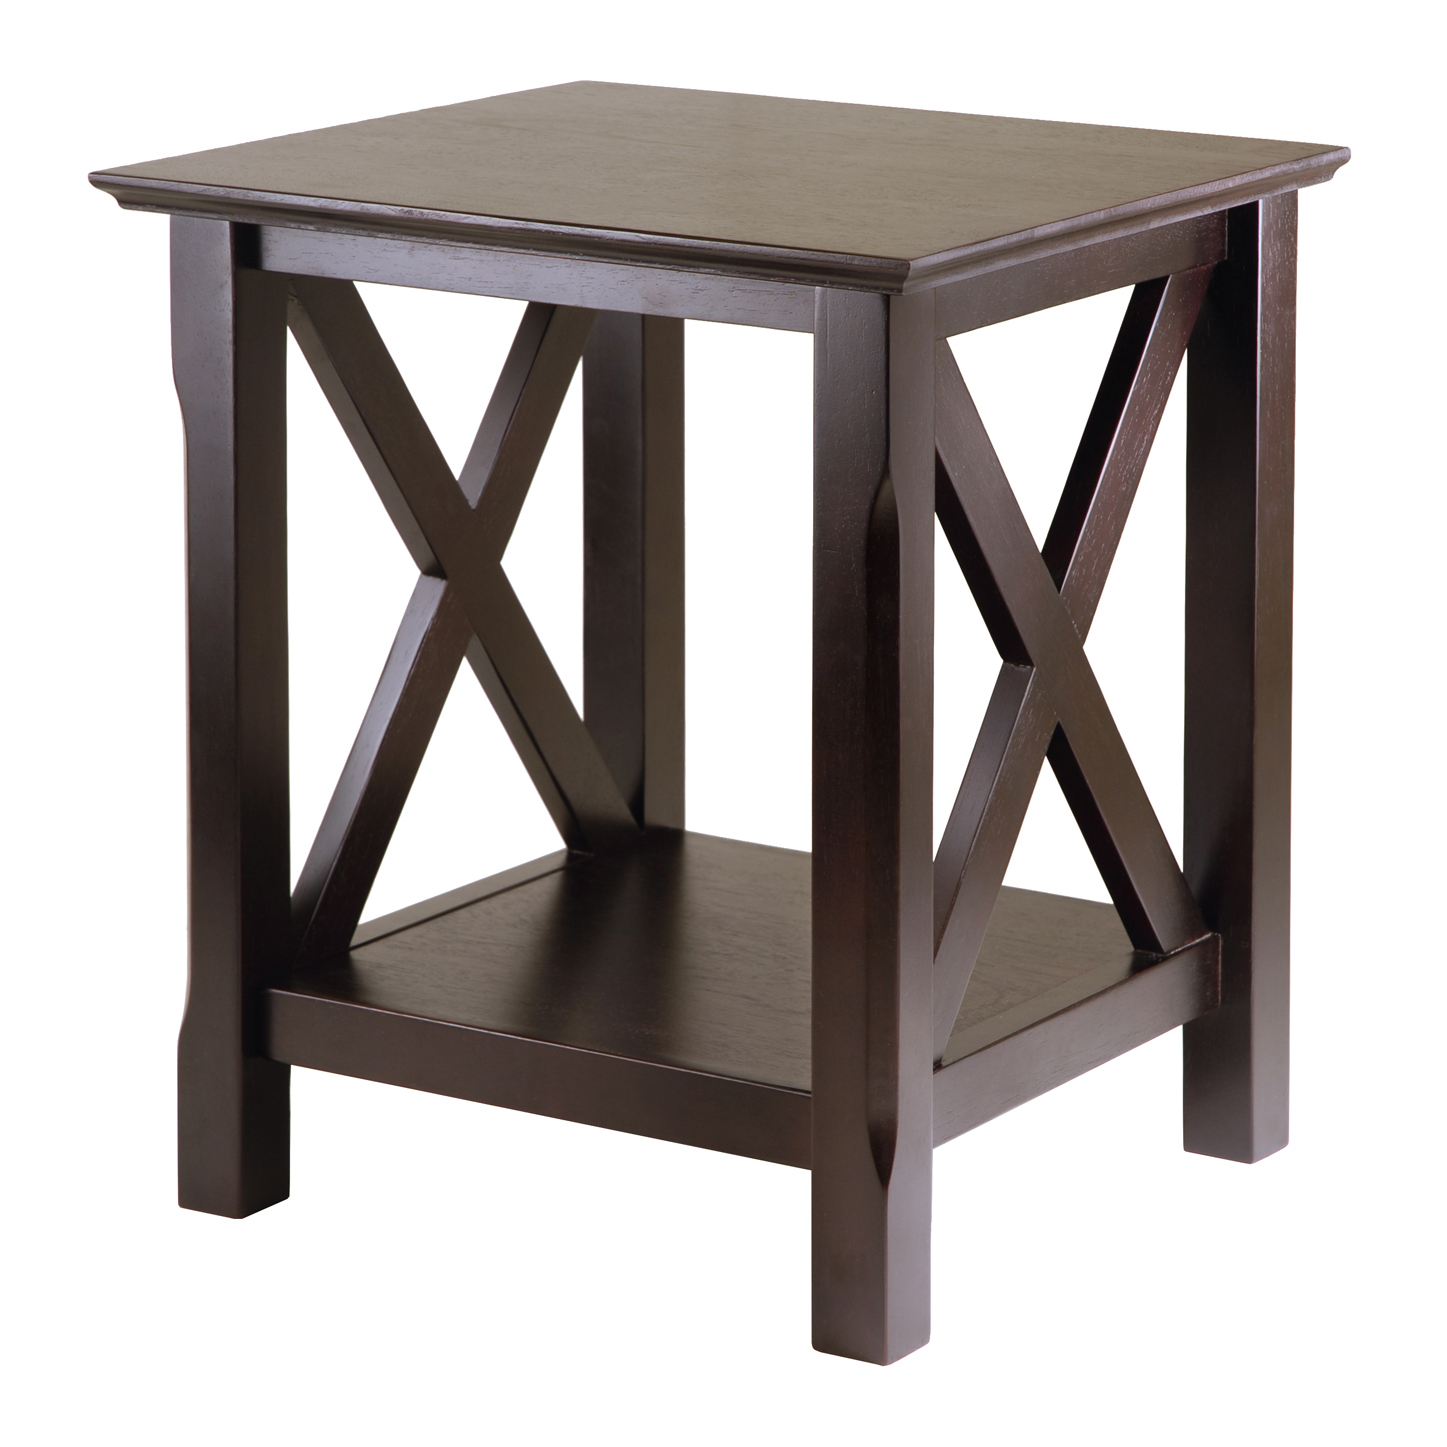 Winsome Wood Xola X Panel End Table, Cappuccino